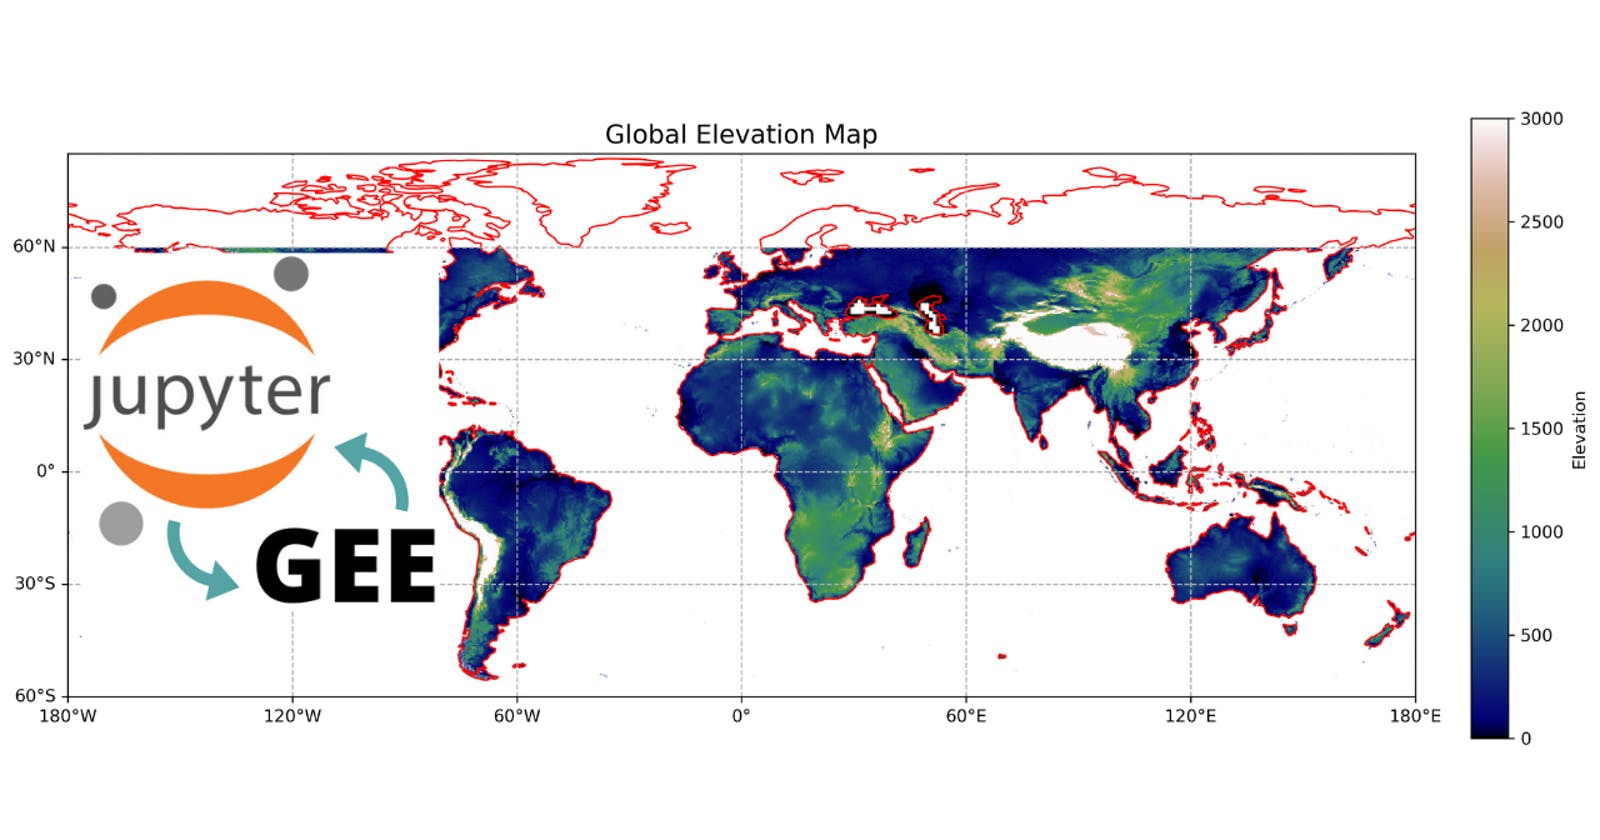 GEE Tutorial #50 - How to create publication quality maps using cartoee